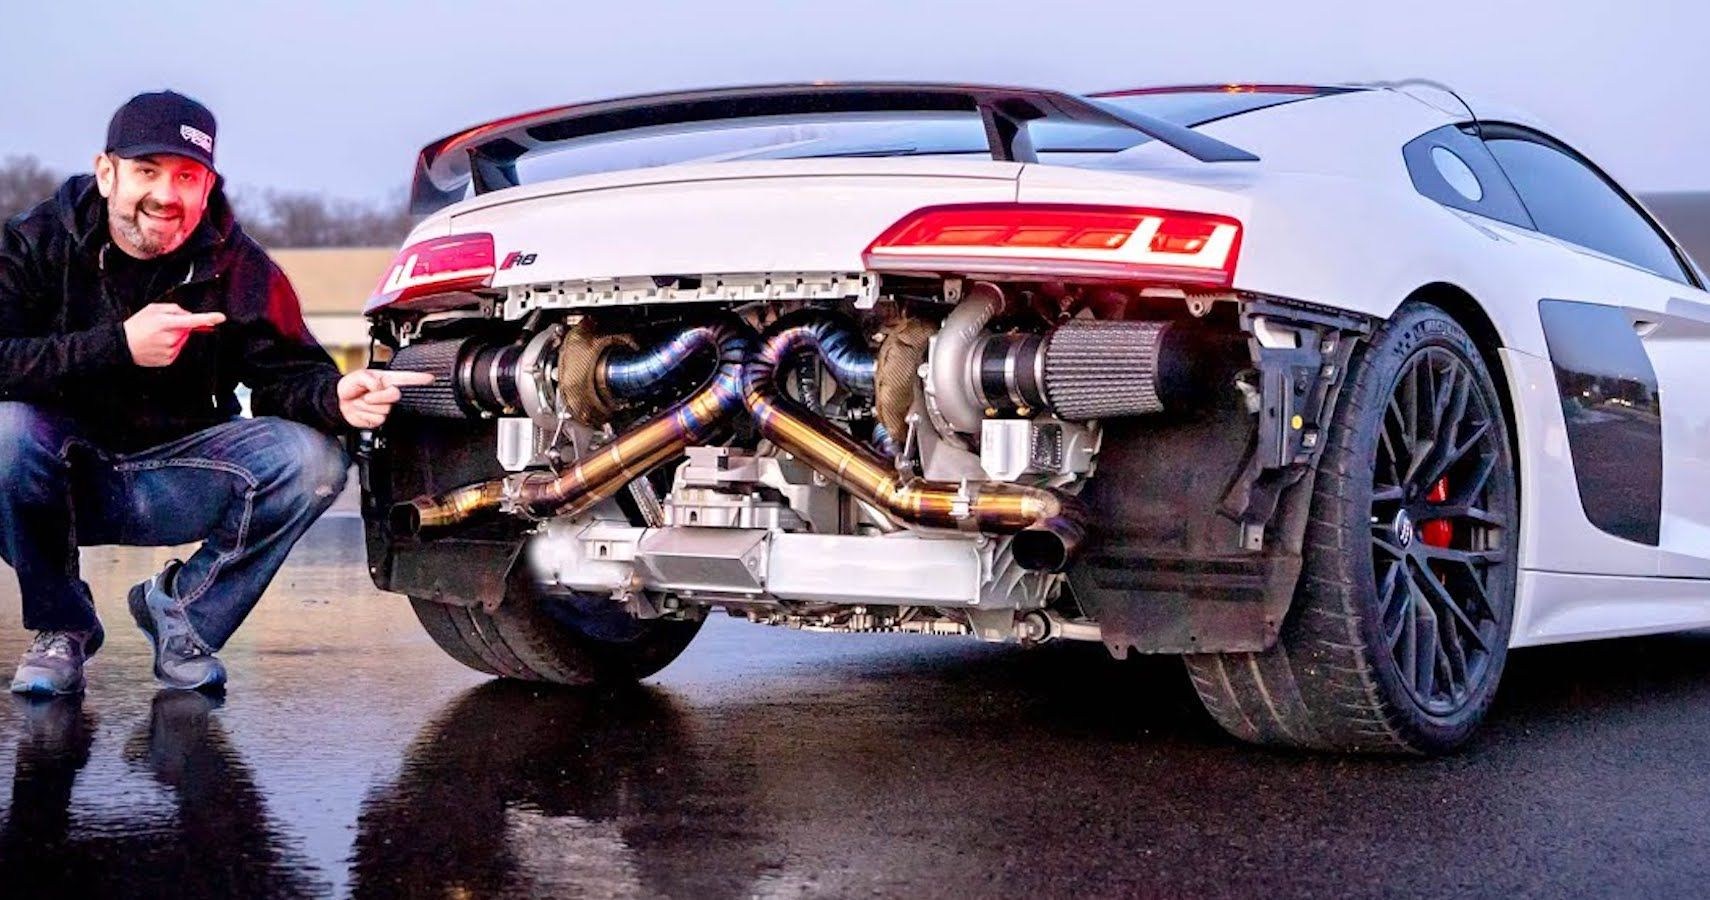 Chicago-Based Tuner Coaxes Four-Figure Horsepower From Audi R8